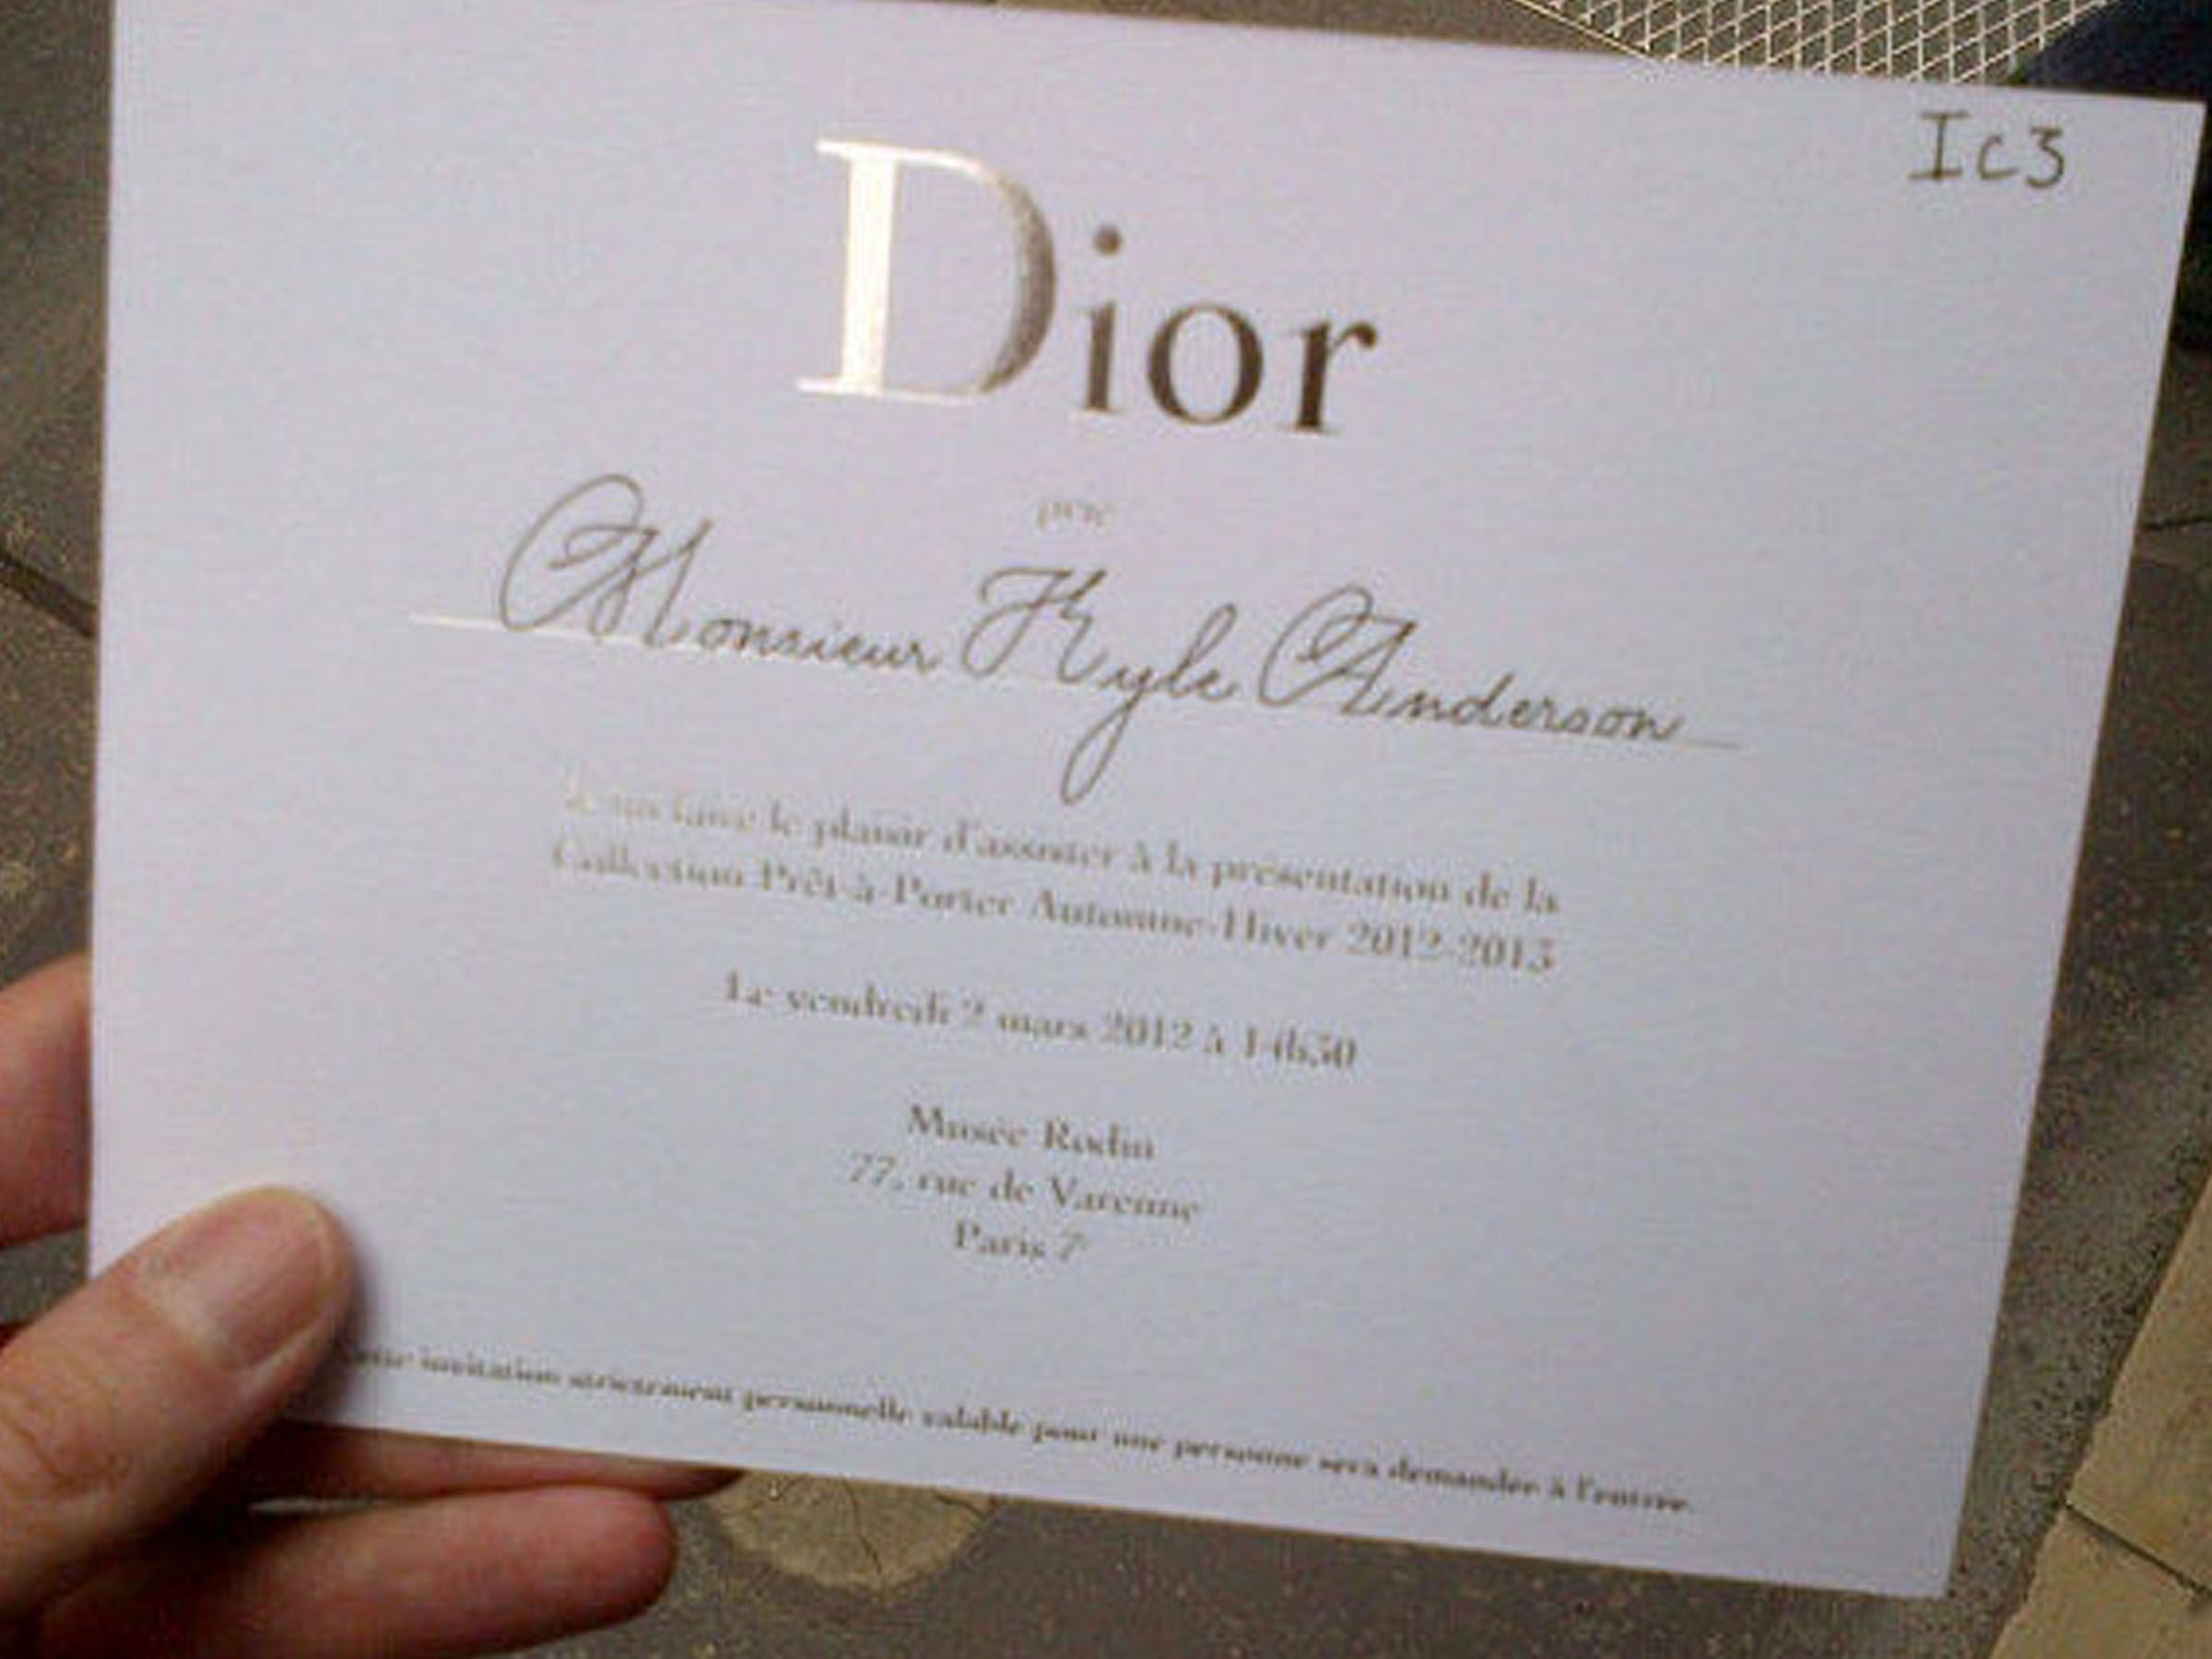 This dior fashion show ticket is a classic example for ticket ideas this dior fashion show ticket is a classic example for ticket ideas it is elegant and supports the aesthetics of the brand in its stereotypical classically stopboris